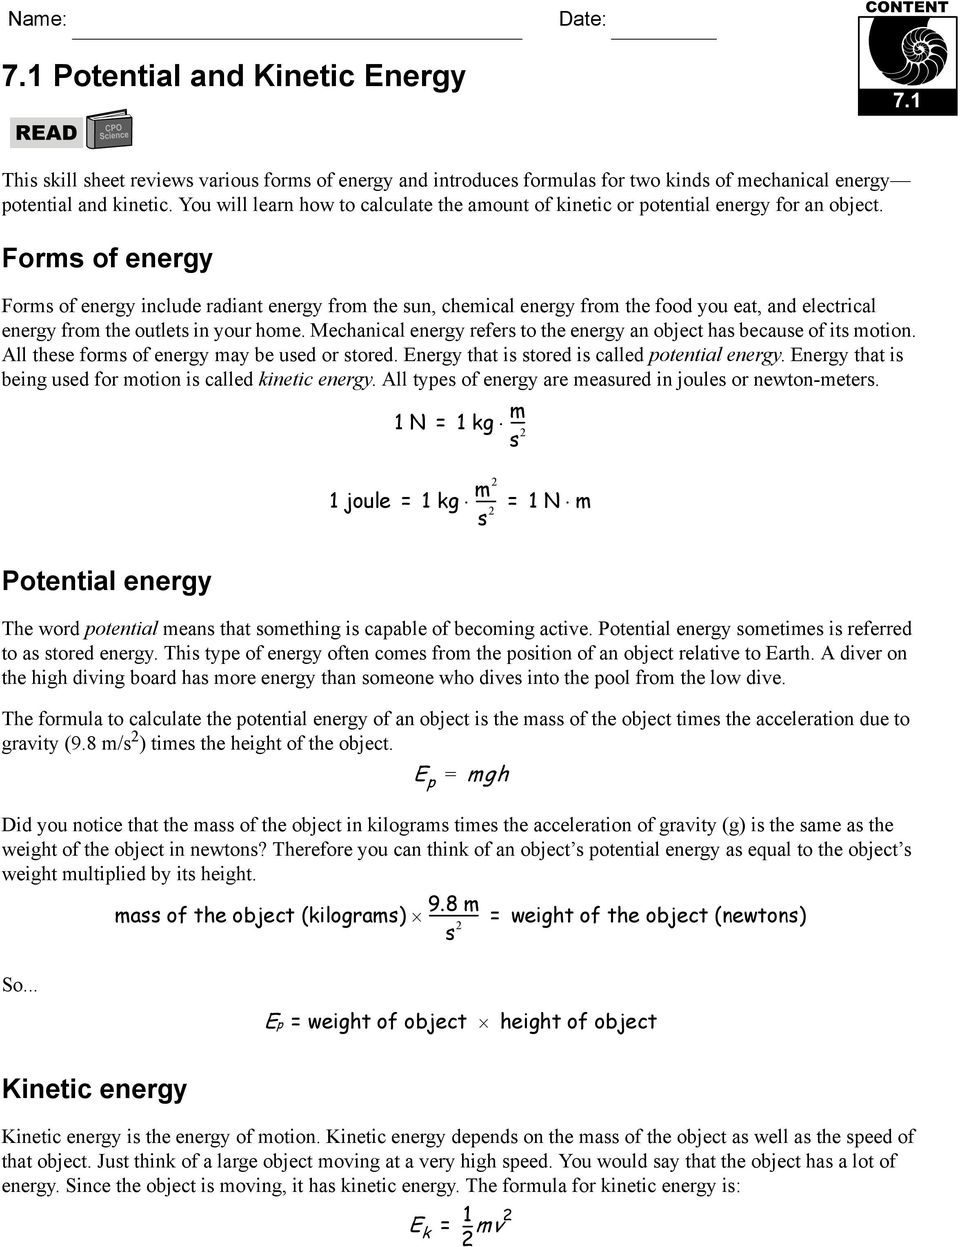 7.1 Potential and Kinetic Energy - PDF